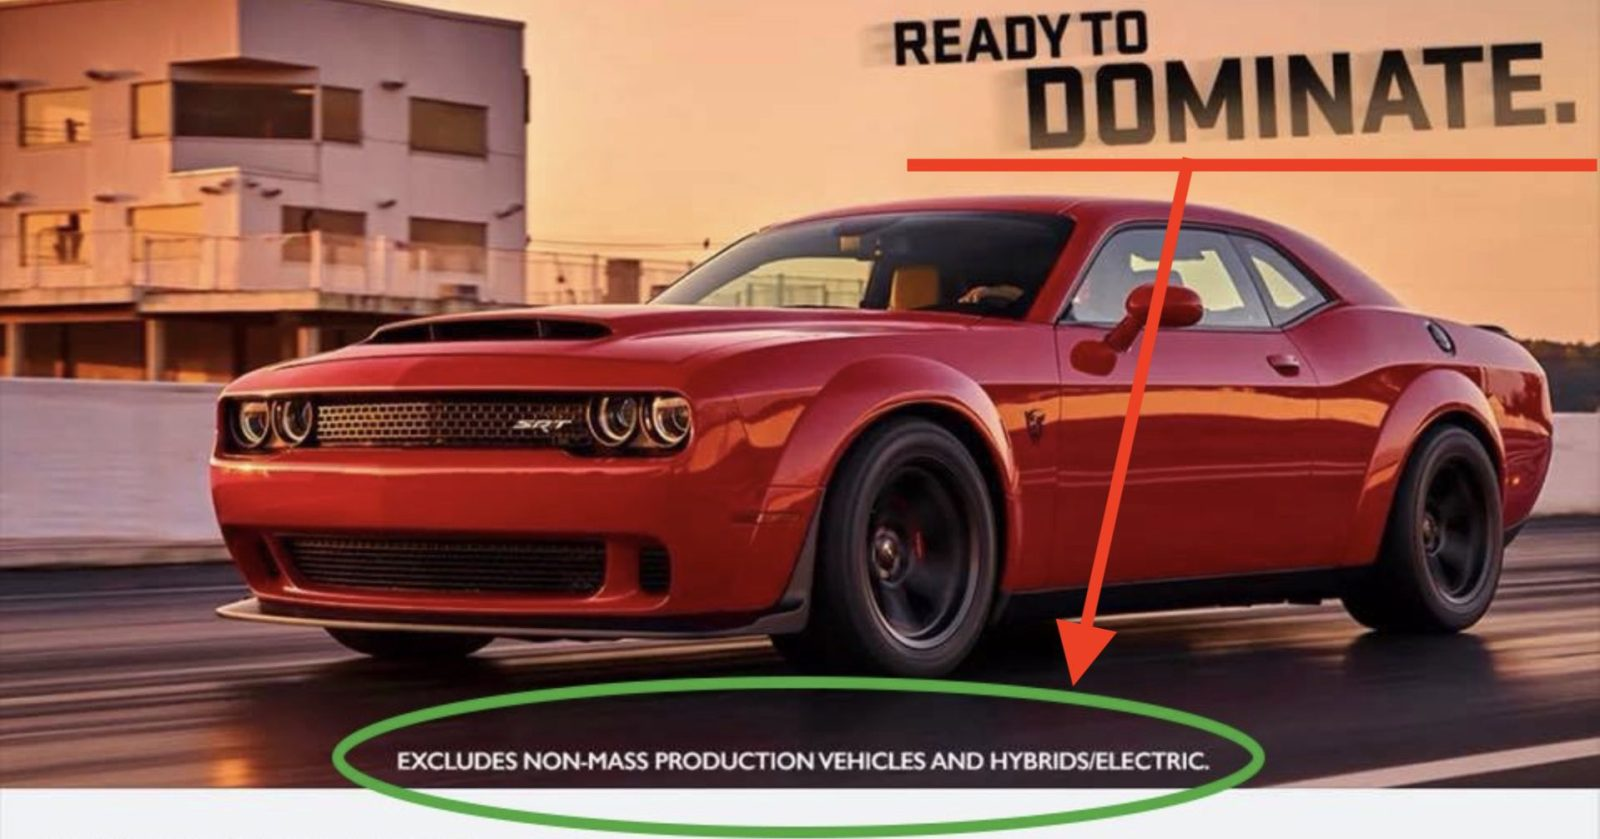 Dodge Challenger Demon Ad Turns Into Best Electric Vehicle Advertising Yet